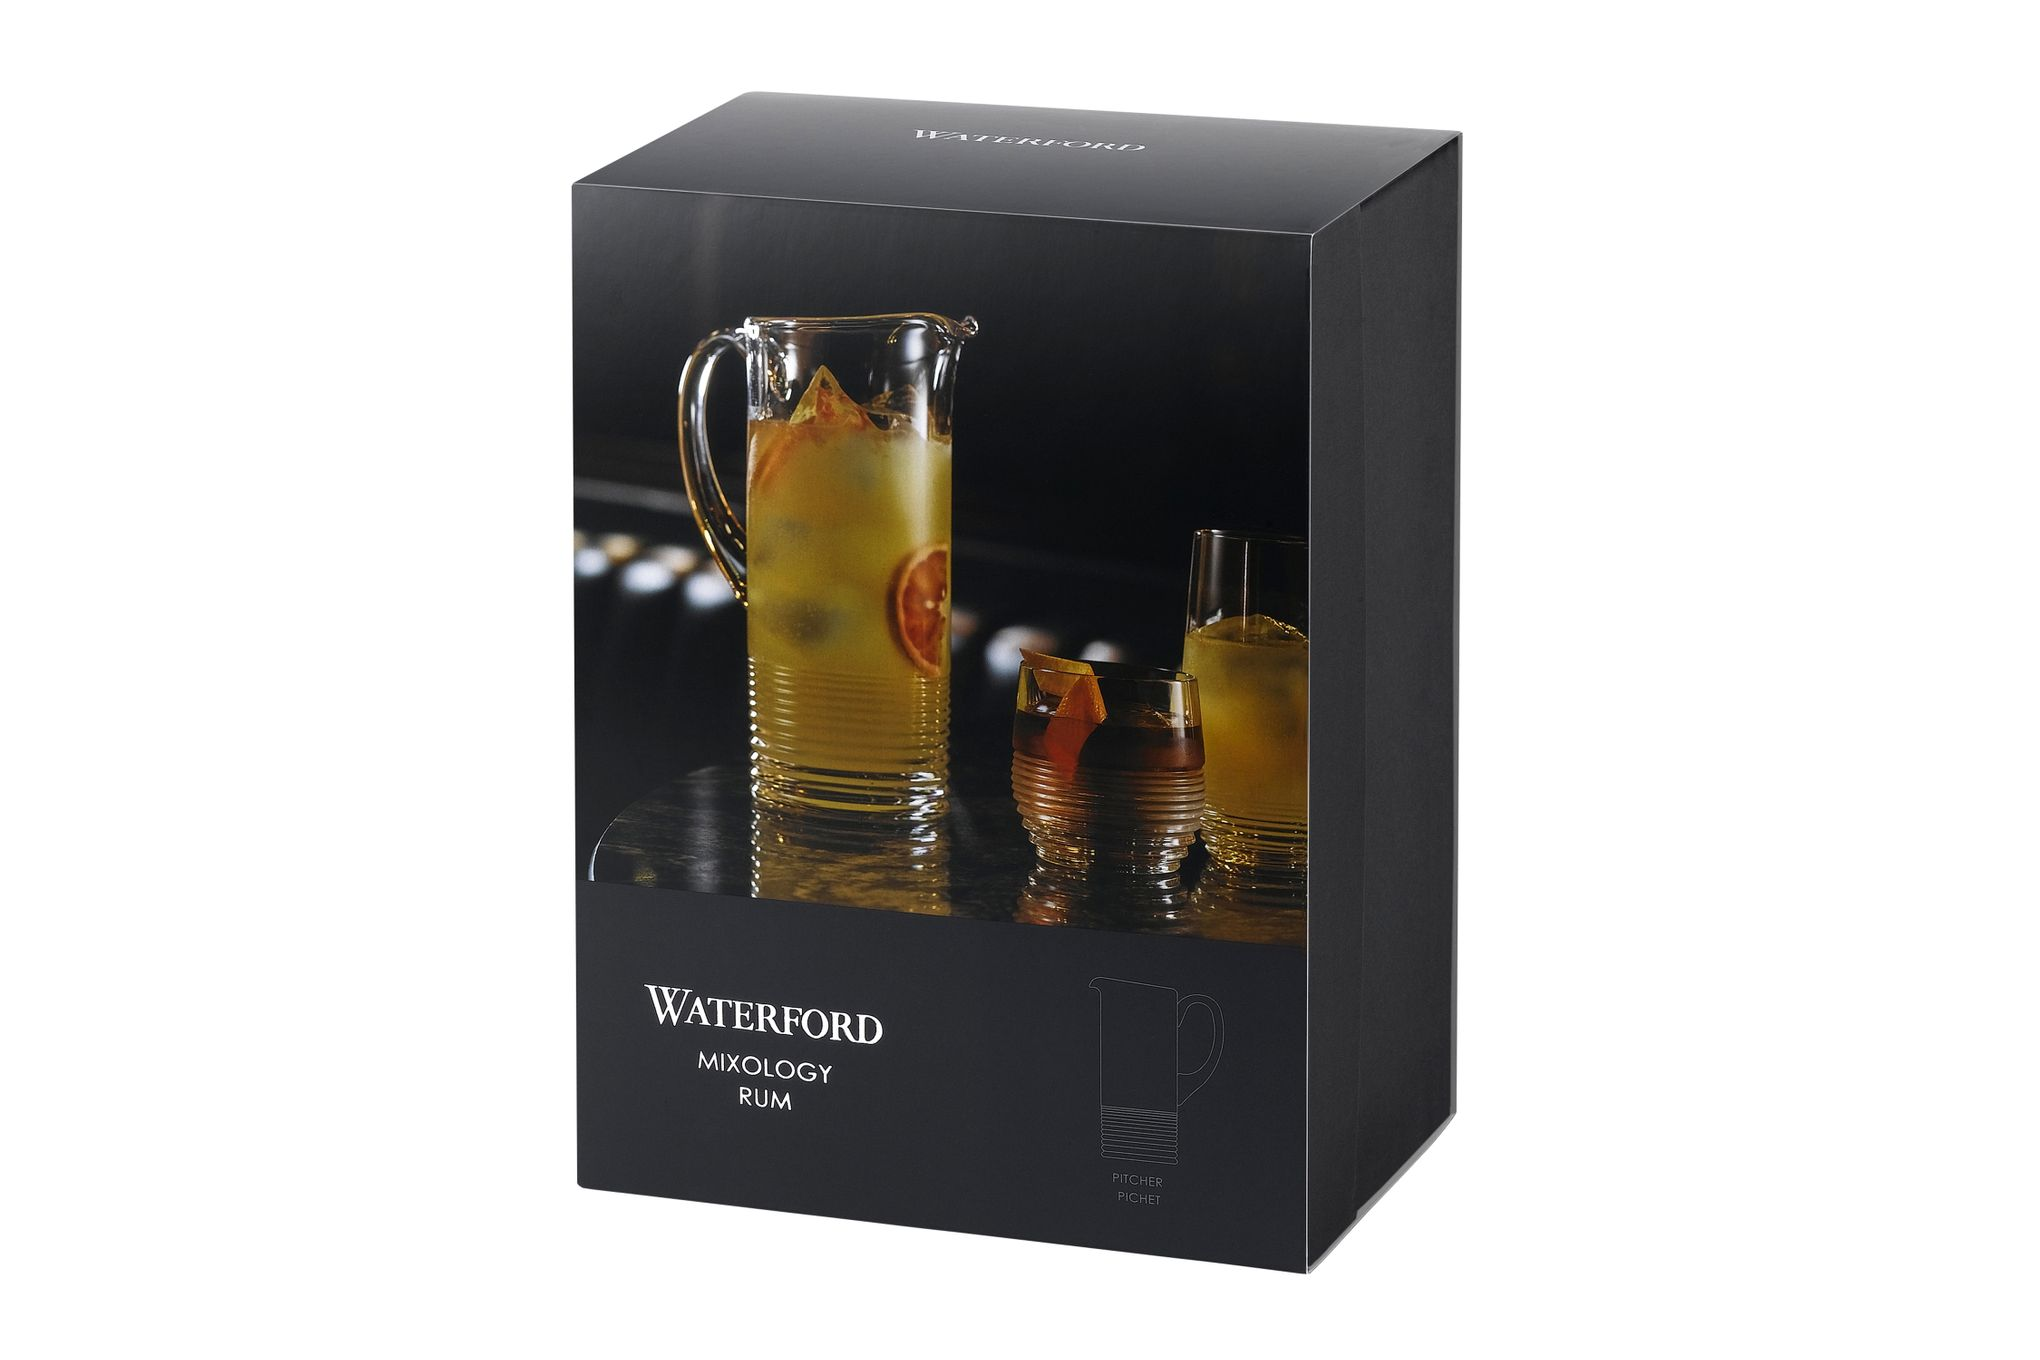 Waterford Mixology Glass Pitcher 1.2l thumb 2